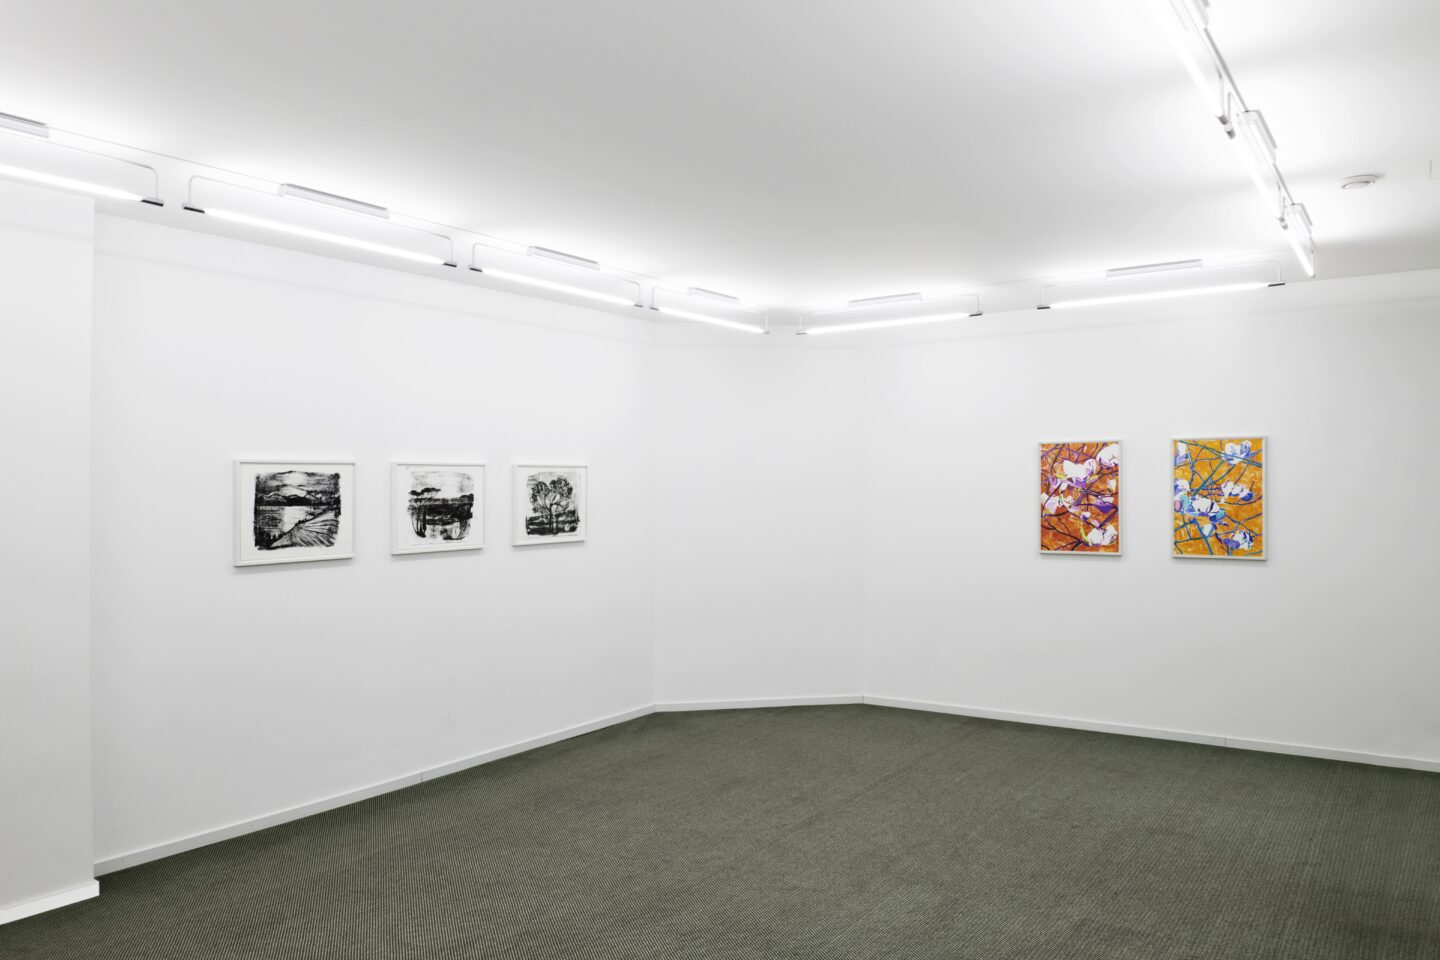 Exhibition View Groupshow «Intaglio and Lithography: Works on Paper; view on Marc Bauer and Vera Rothamel» at Edition VFO, Zurch, 2020 / Photo: Sabina Bosch / Courtesy: the artists and Edition VFO